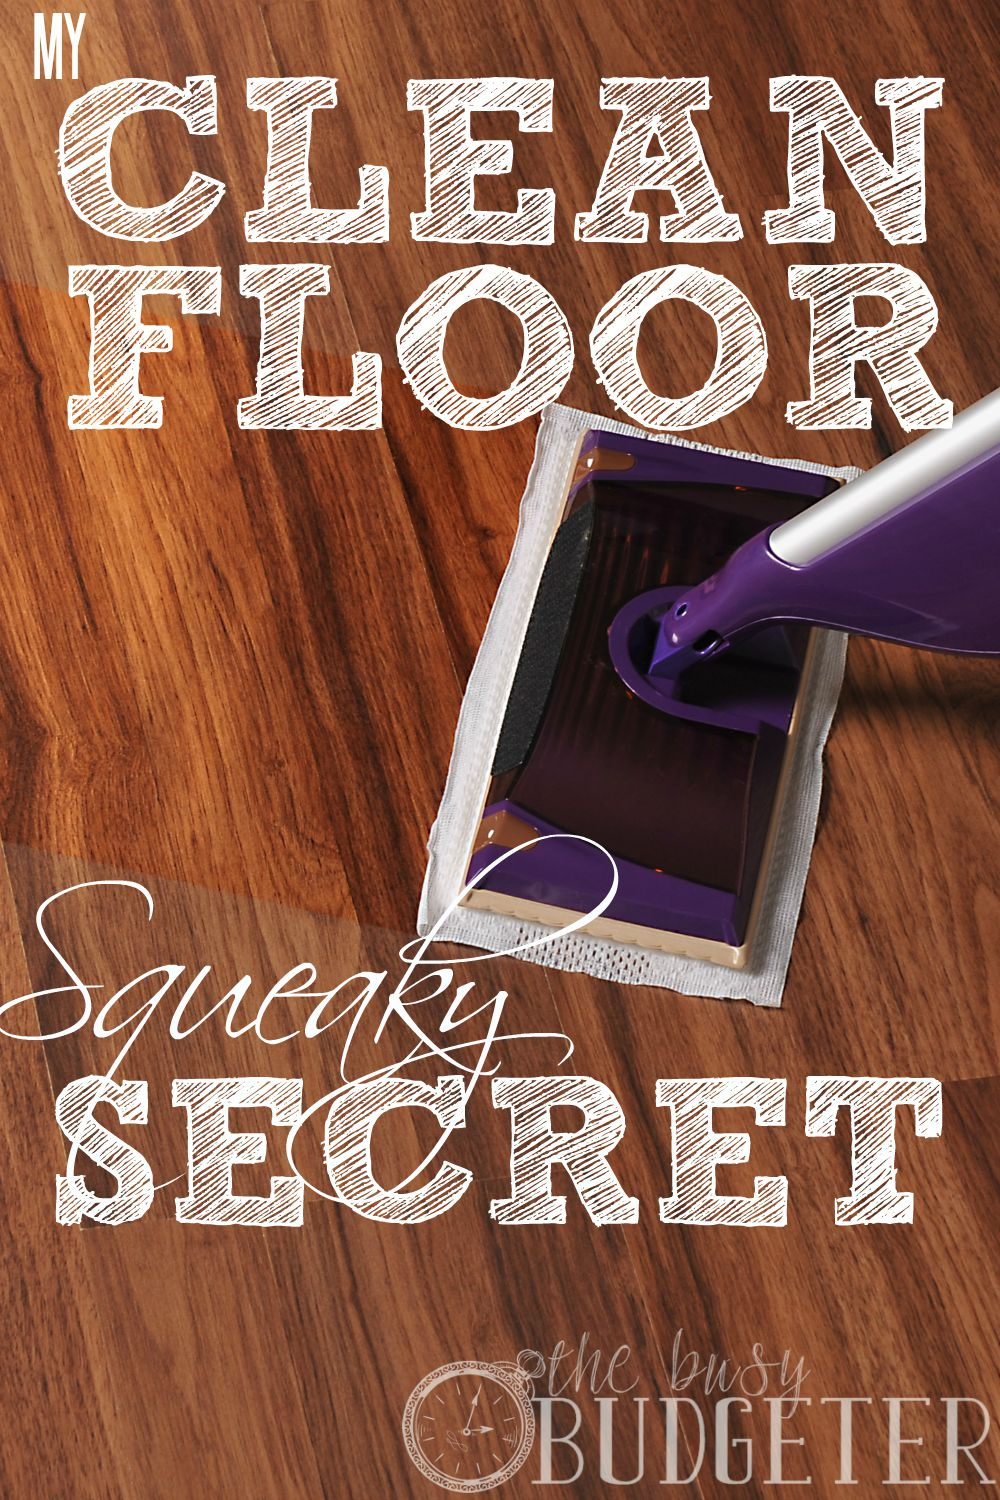 My Clean Floor Squeaky Secret